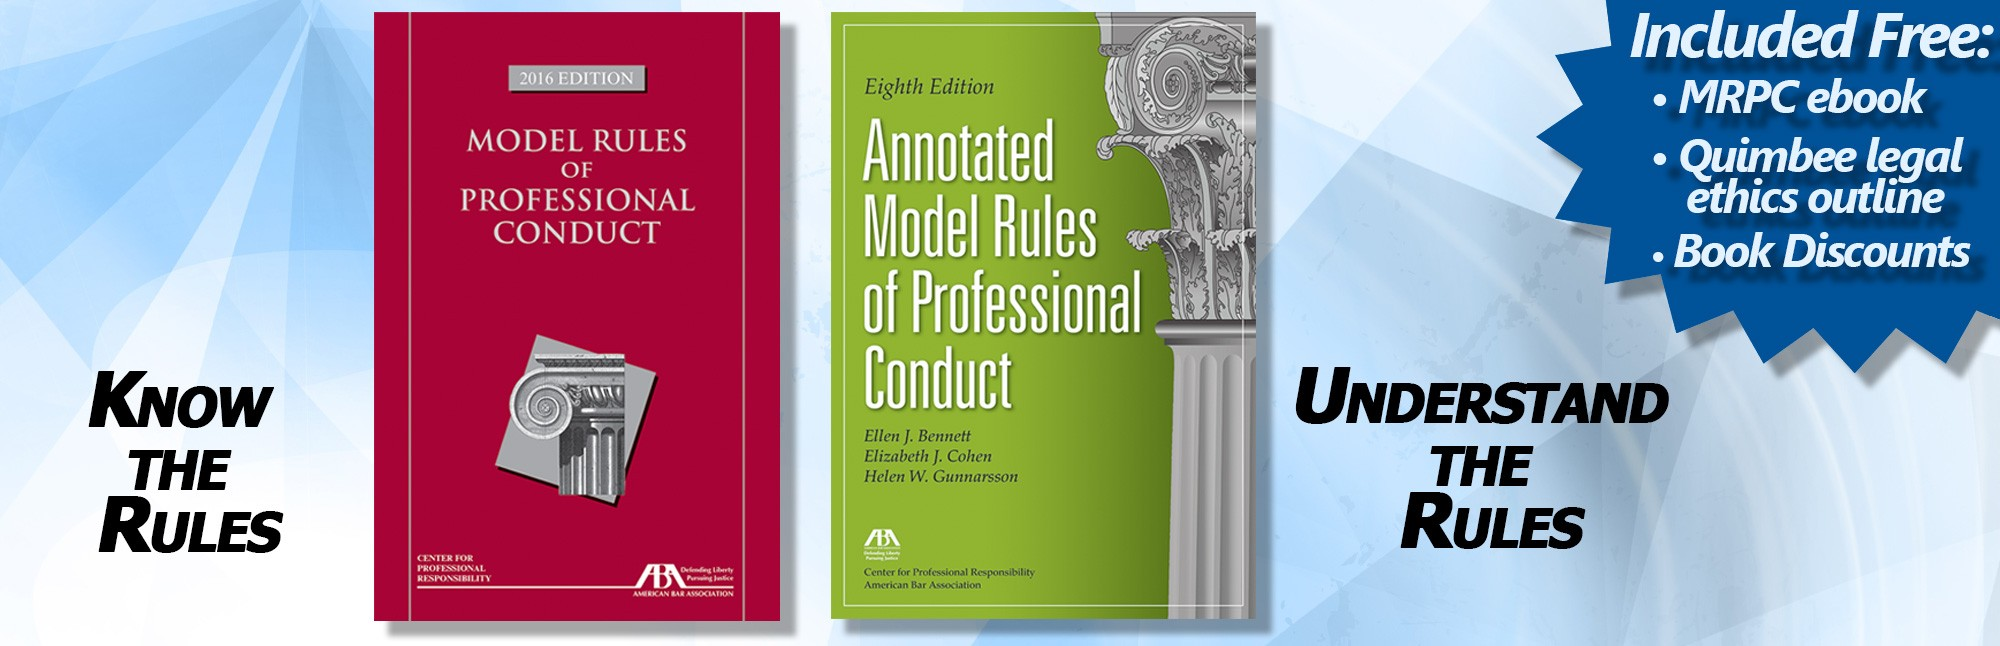 Model Rules of Professional Ethics